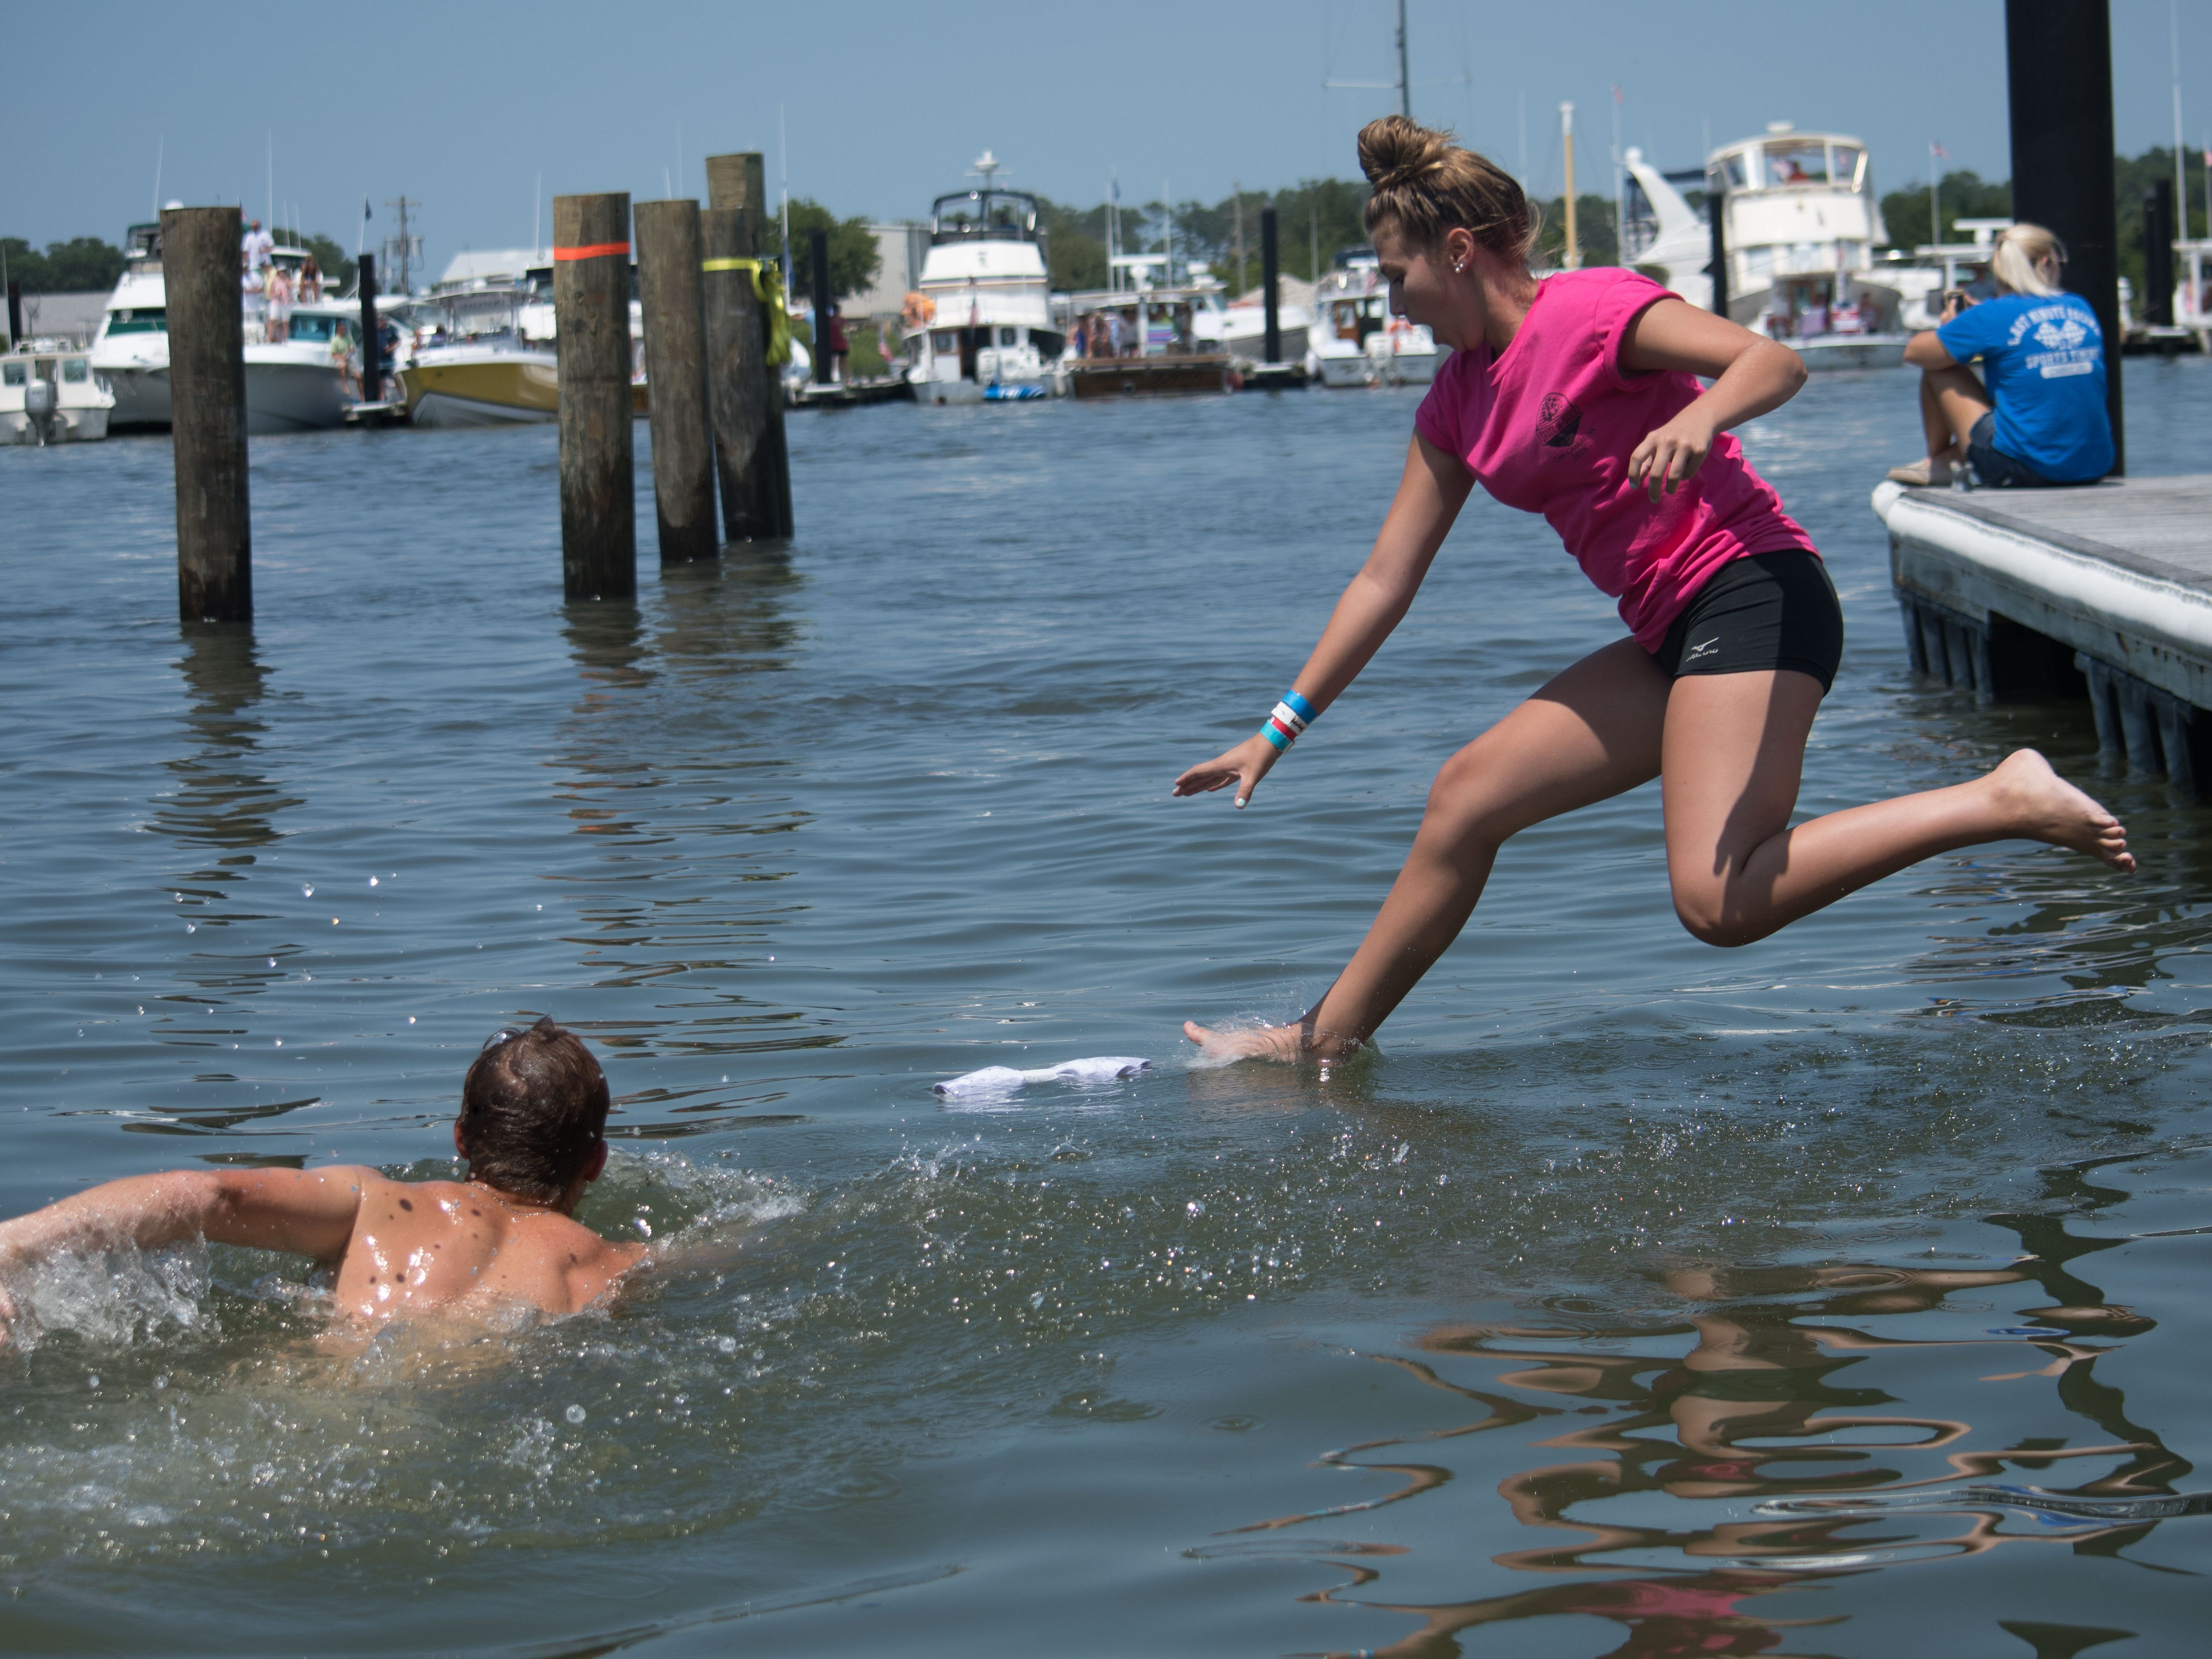 Two members of the crowd leap into the bay in an attempt to obtain a T-shirt throw by a passing participating boat.